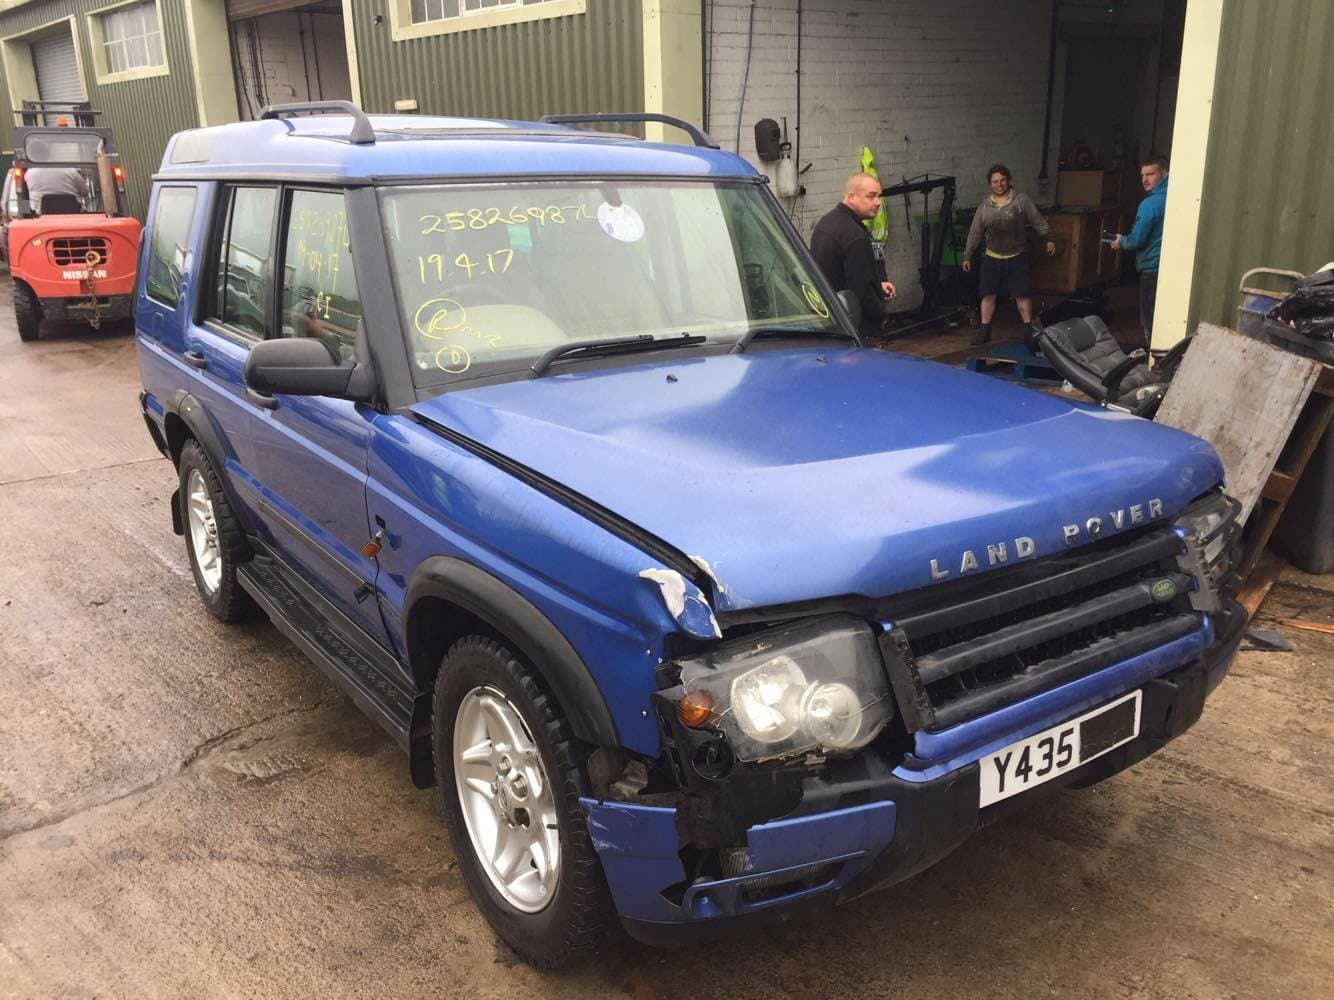 currently breaking 2001 land rover discovery 2 2 5l td5 es rh gentlemenofsalvage co uk 2001 land rover discovery service manual pdf land rover discovery 2001 owners manual